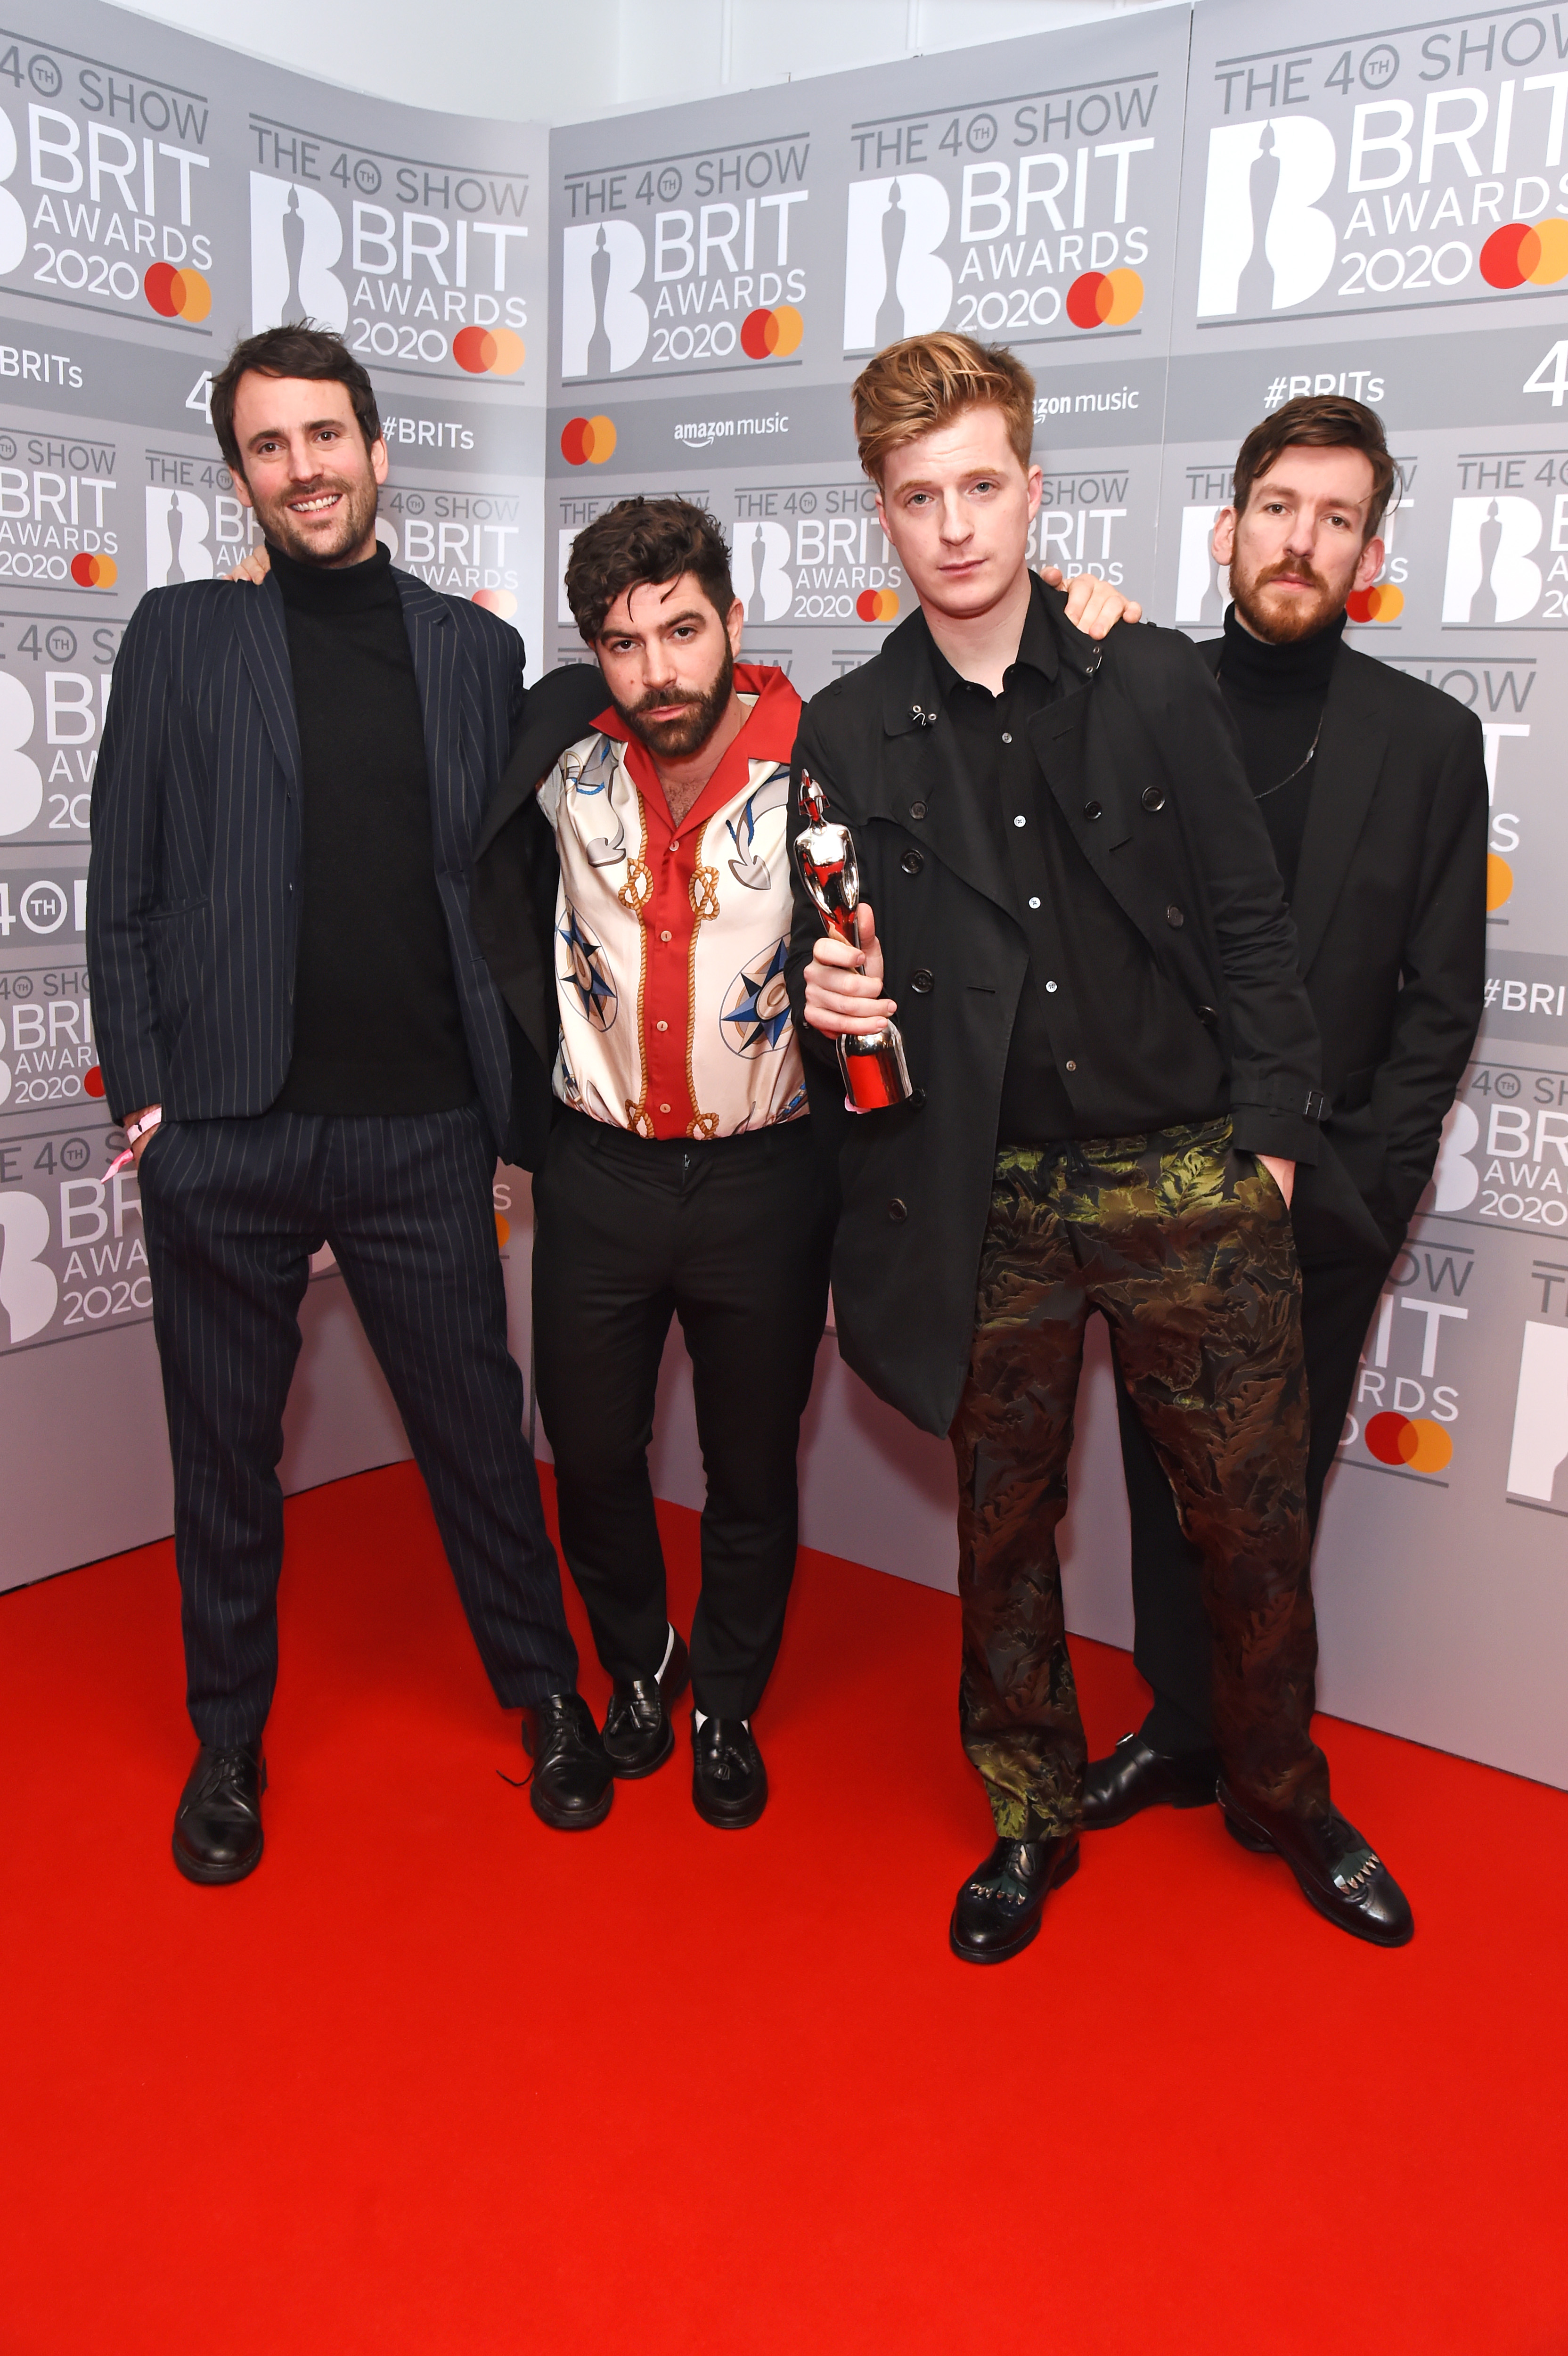 (L to R) Jimmy Smith, Yannis Philippakis, Jack Bevan and Edwin Congreave of Foals, winners of the Group Of The Year award, pose in the winners room at The BRIT Awards 2020 at The O2 Arena on February 18, 2020 in London, England.  (Photo by David M. Benett/Dave Benett/Getty Images)